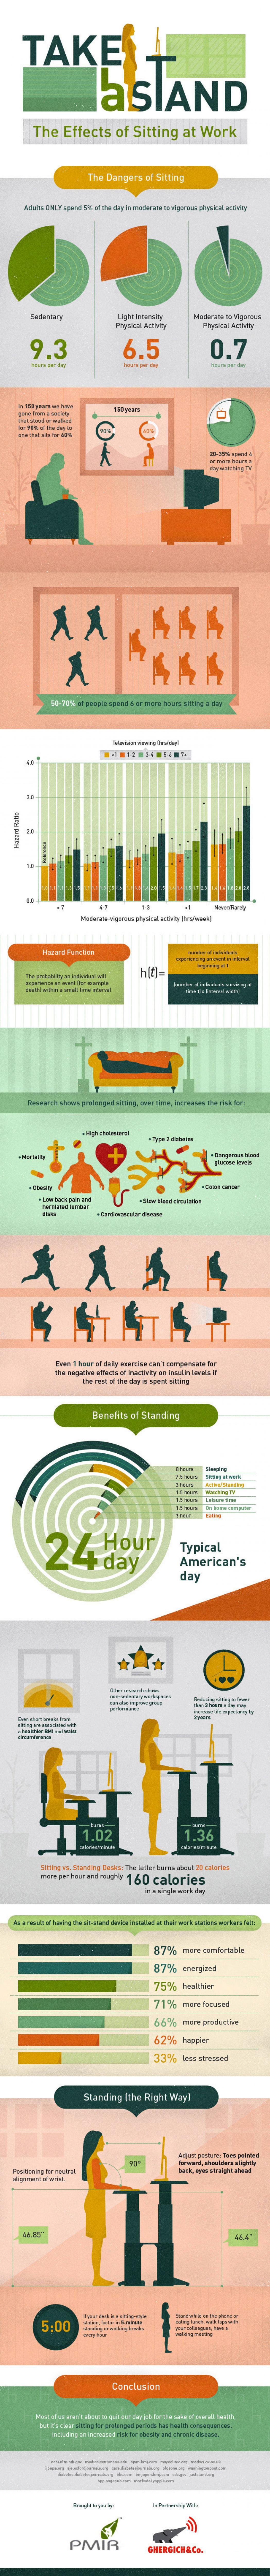 Take a Stand: The Effects of Sitting at Work Infographic